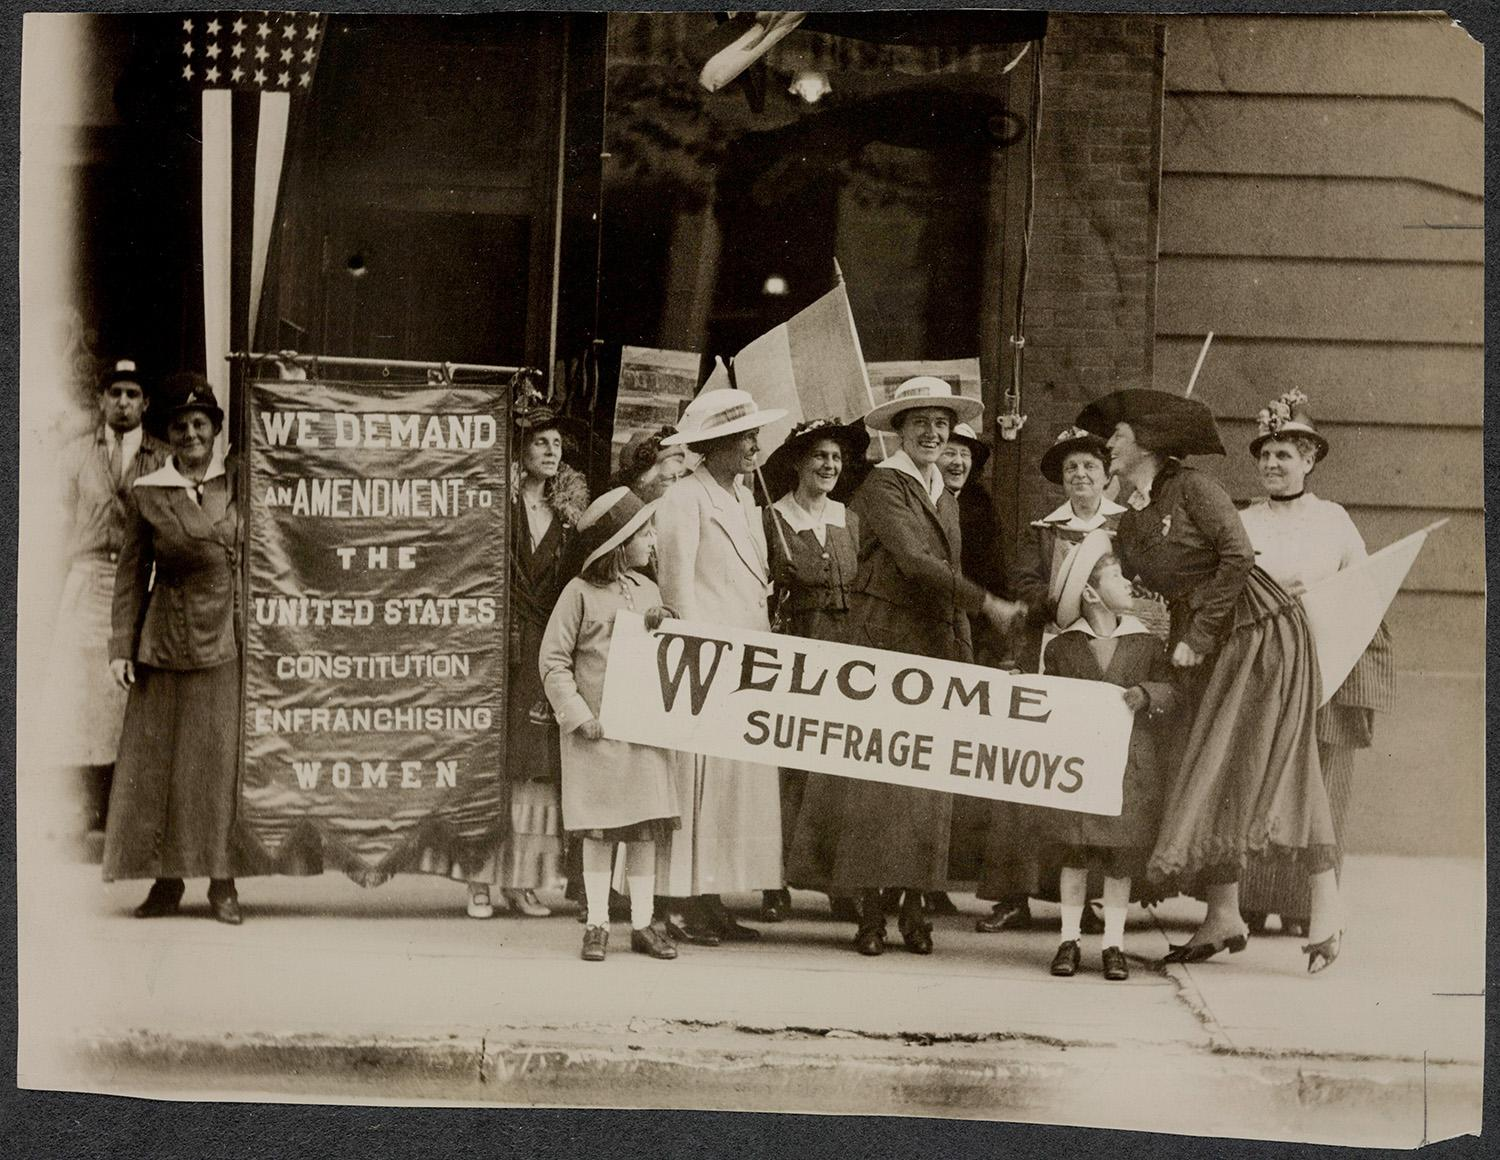 <p>Suffrage envoys from San Francisco greeted in New Jersey on their way to Washington to present a petition to Congress Suffrage envoys from San Francisco greeted containing more than 500,000 signatures, in 1915. (Records of the National Woman's Party/Library of Congress) </p>